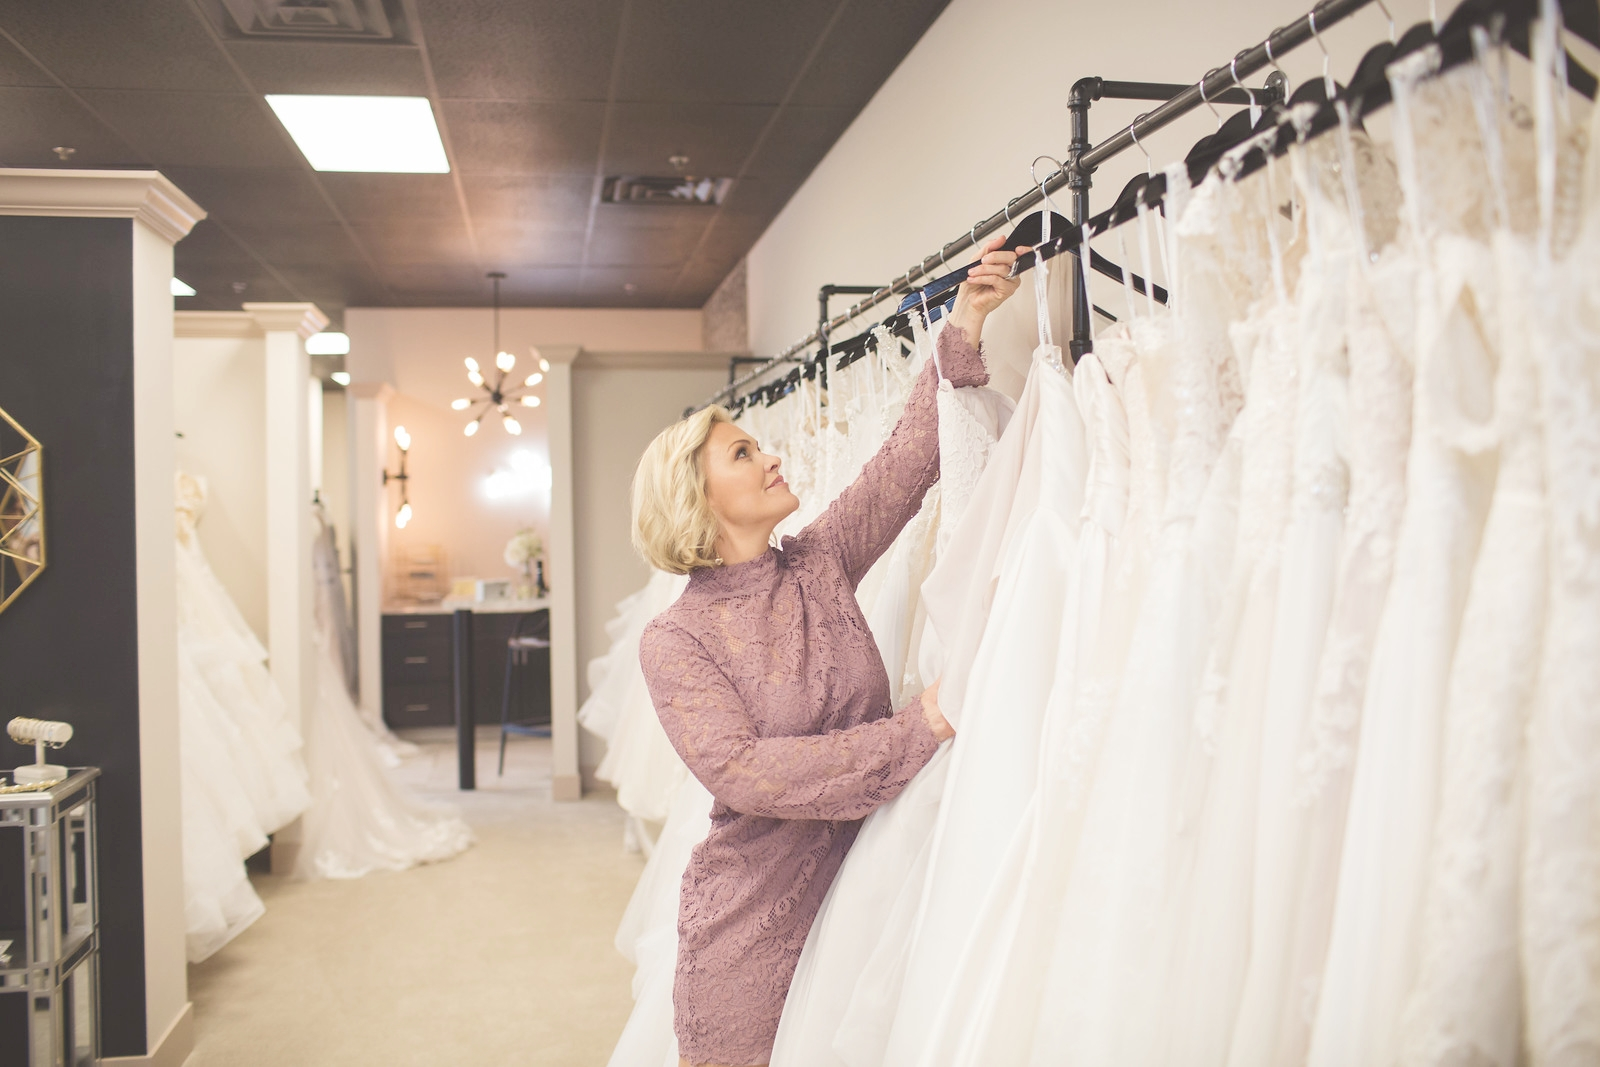 Appointments The Wedding Studio Bridal Shop Indianapolis Indiana Largest Selection Of Wedding Dresses And Plus Sizes In Greenwood